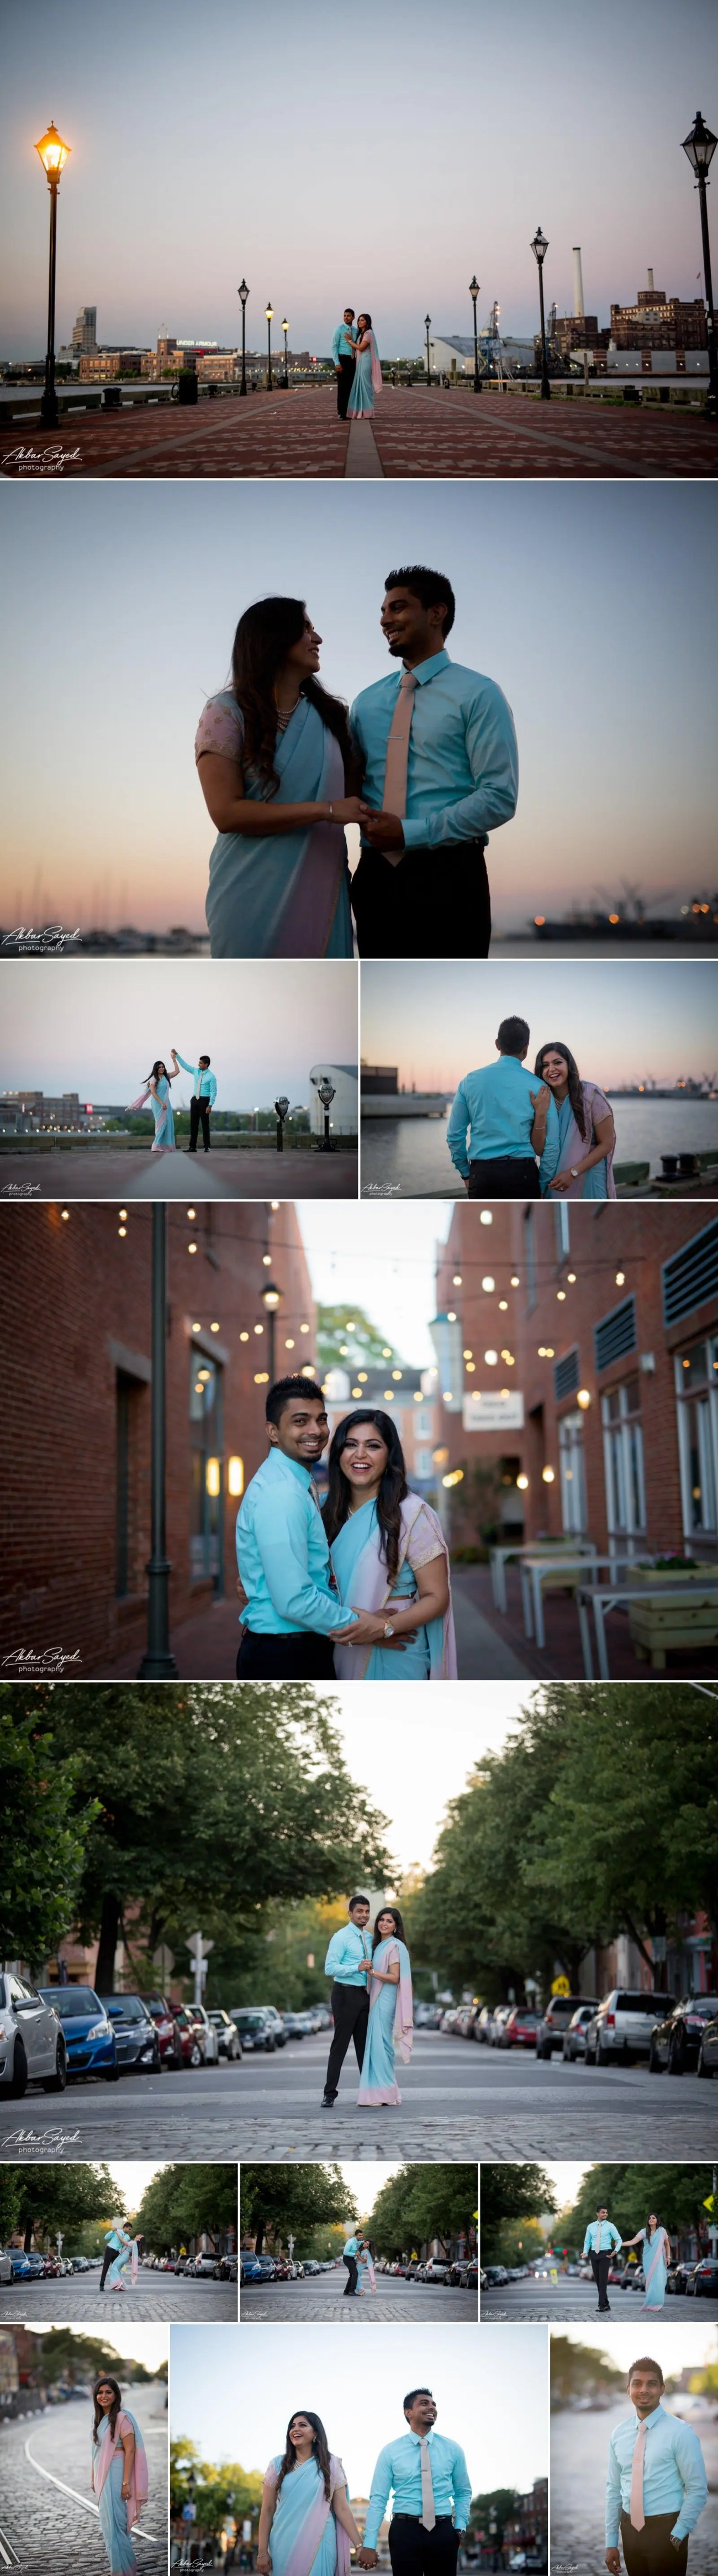 A photo collage of a Sikh and Hindu fusion couple on their engagement session in Fells Point, Baltimore, Maryland.